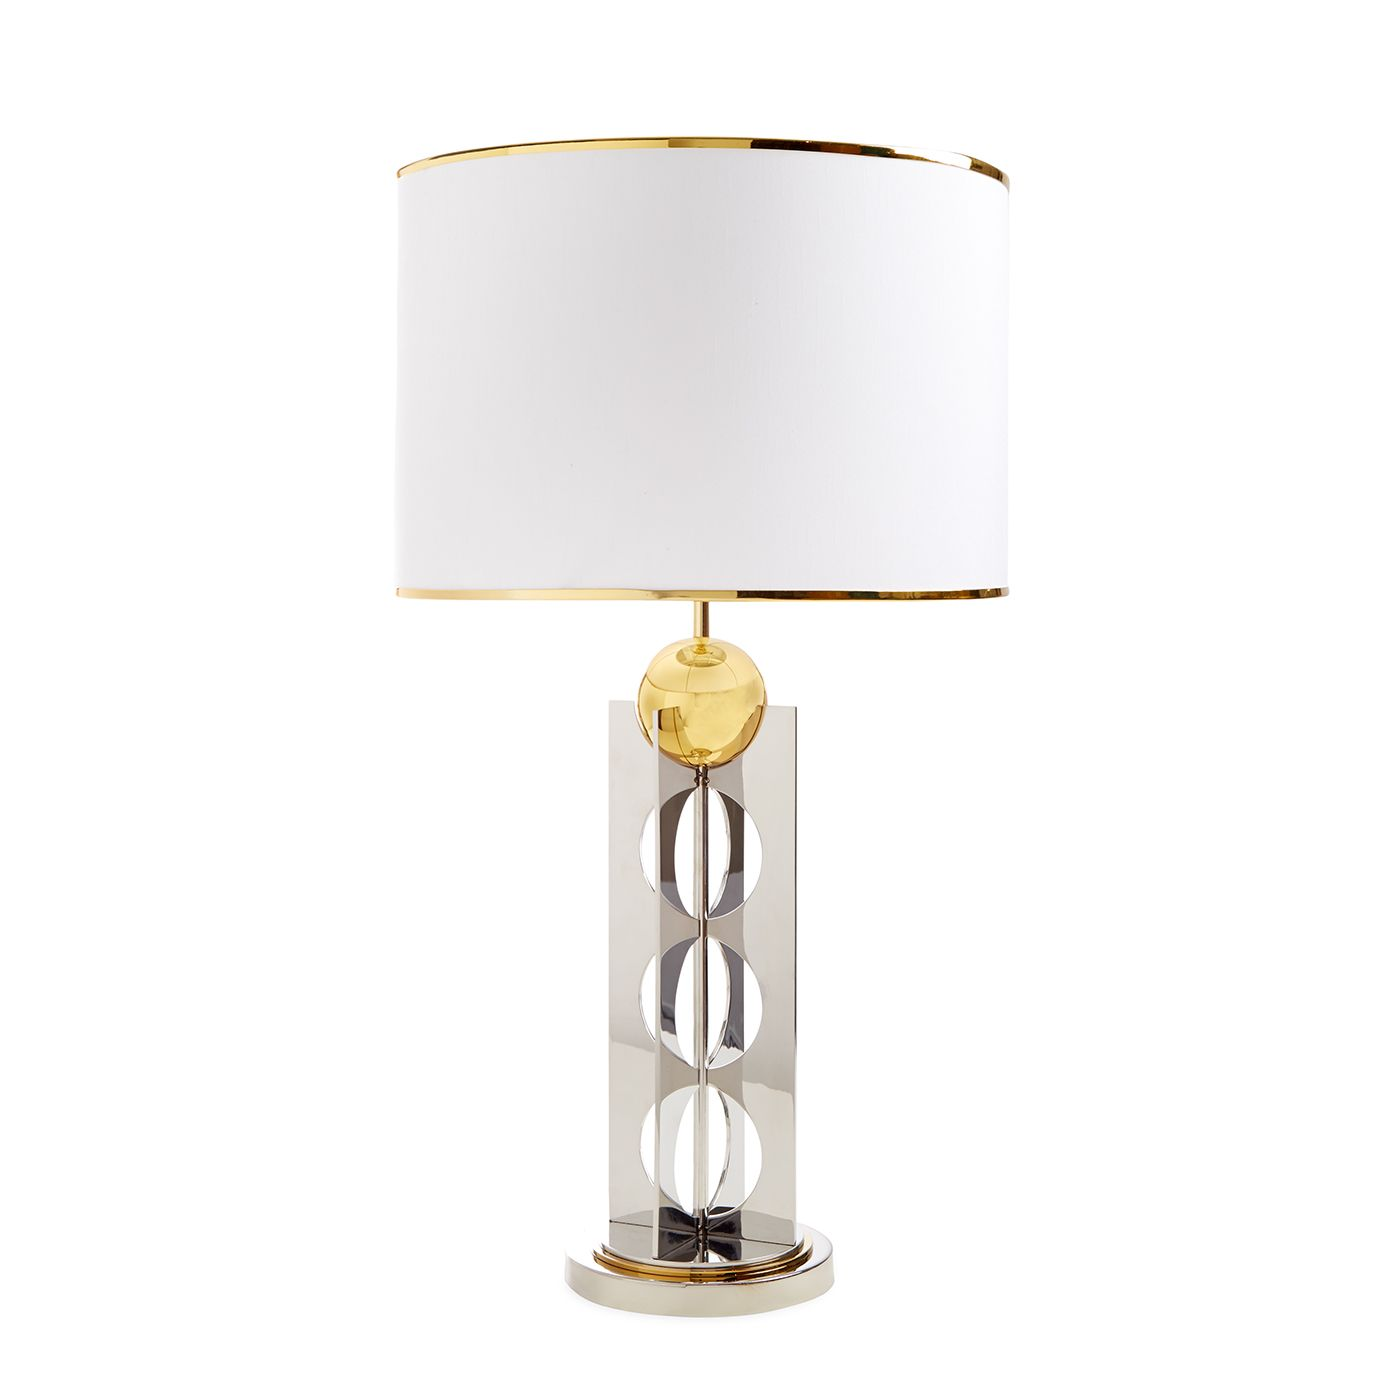 Berlin Table Lamp With Images Table Lamp Lamp Modern Table Lamp